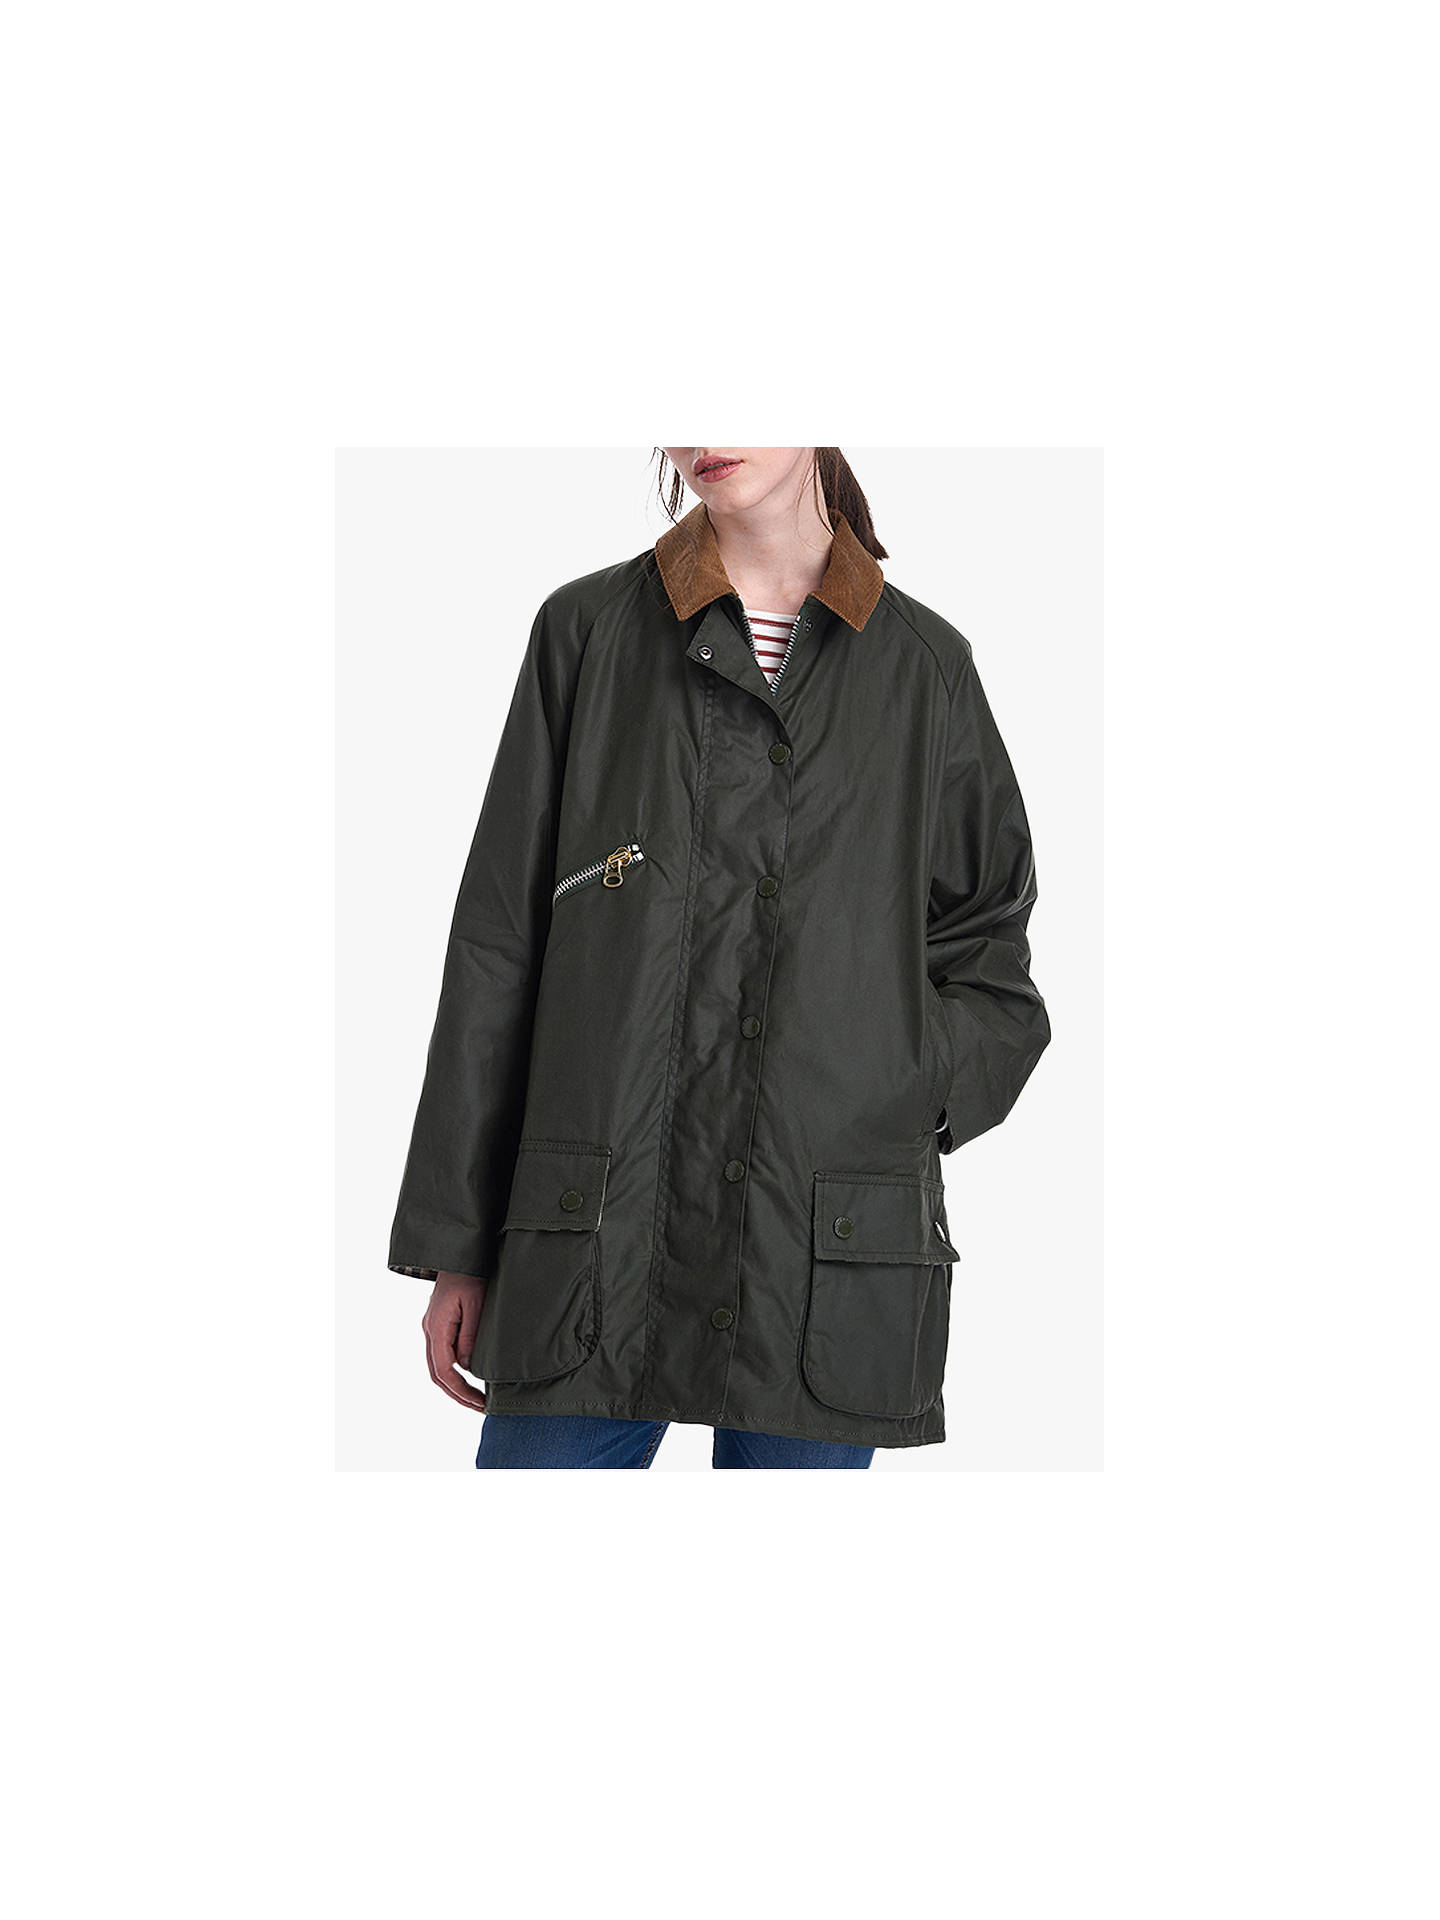 Barbour By Alexachung Edith Waxed Jacket, Duffle/Northumberland by Barbour